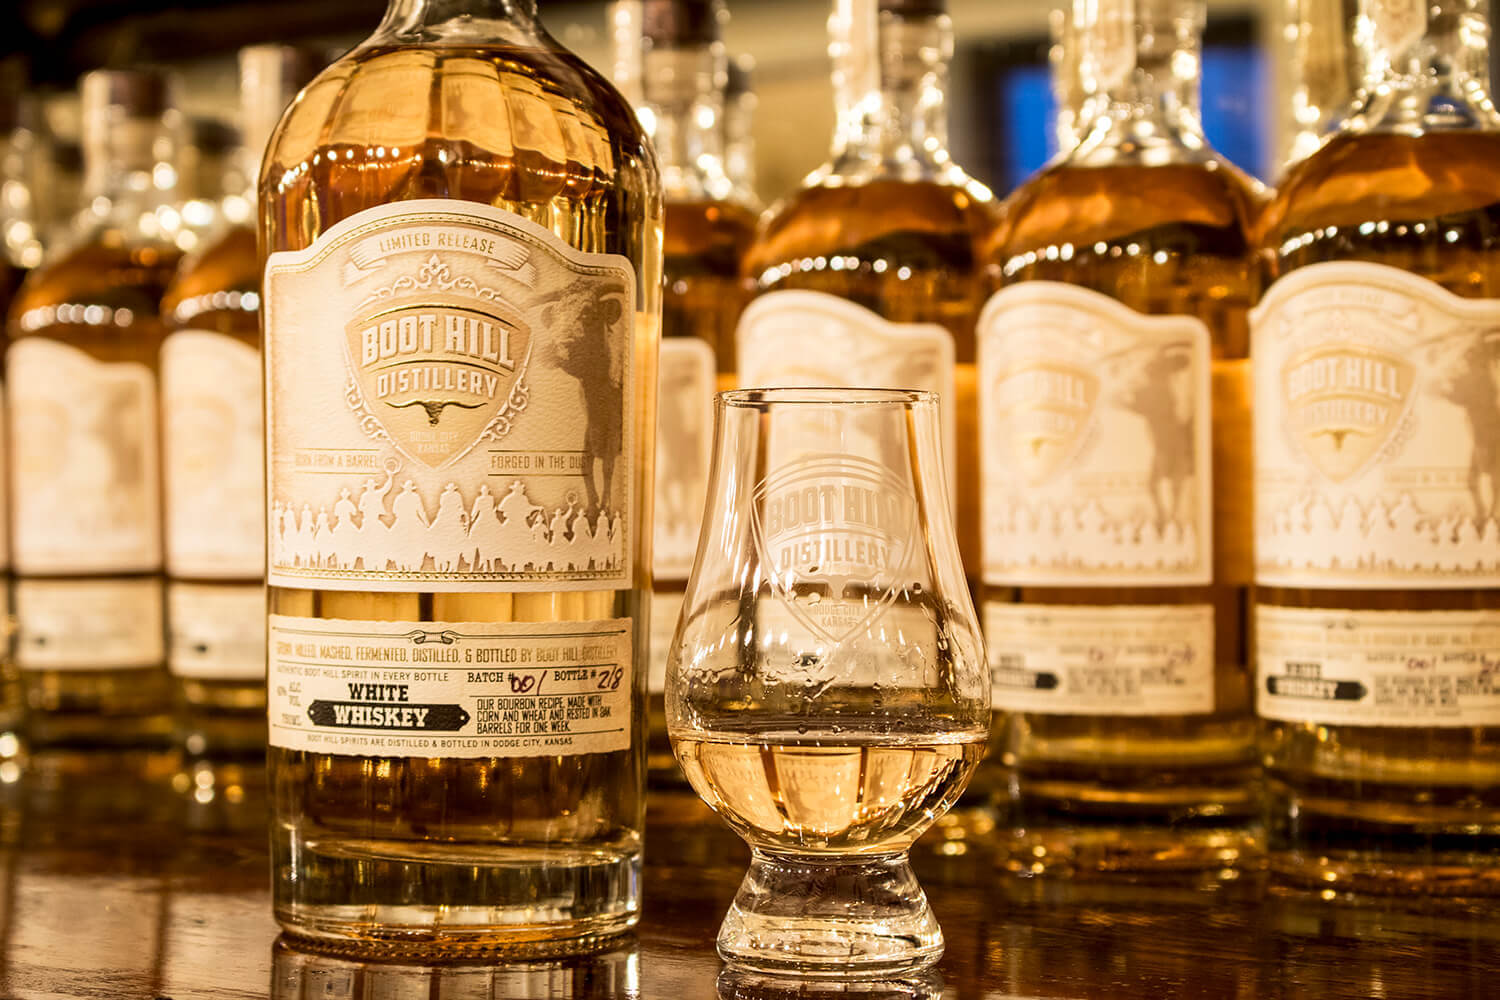 Boot Hill White Whiskey